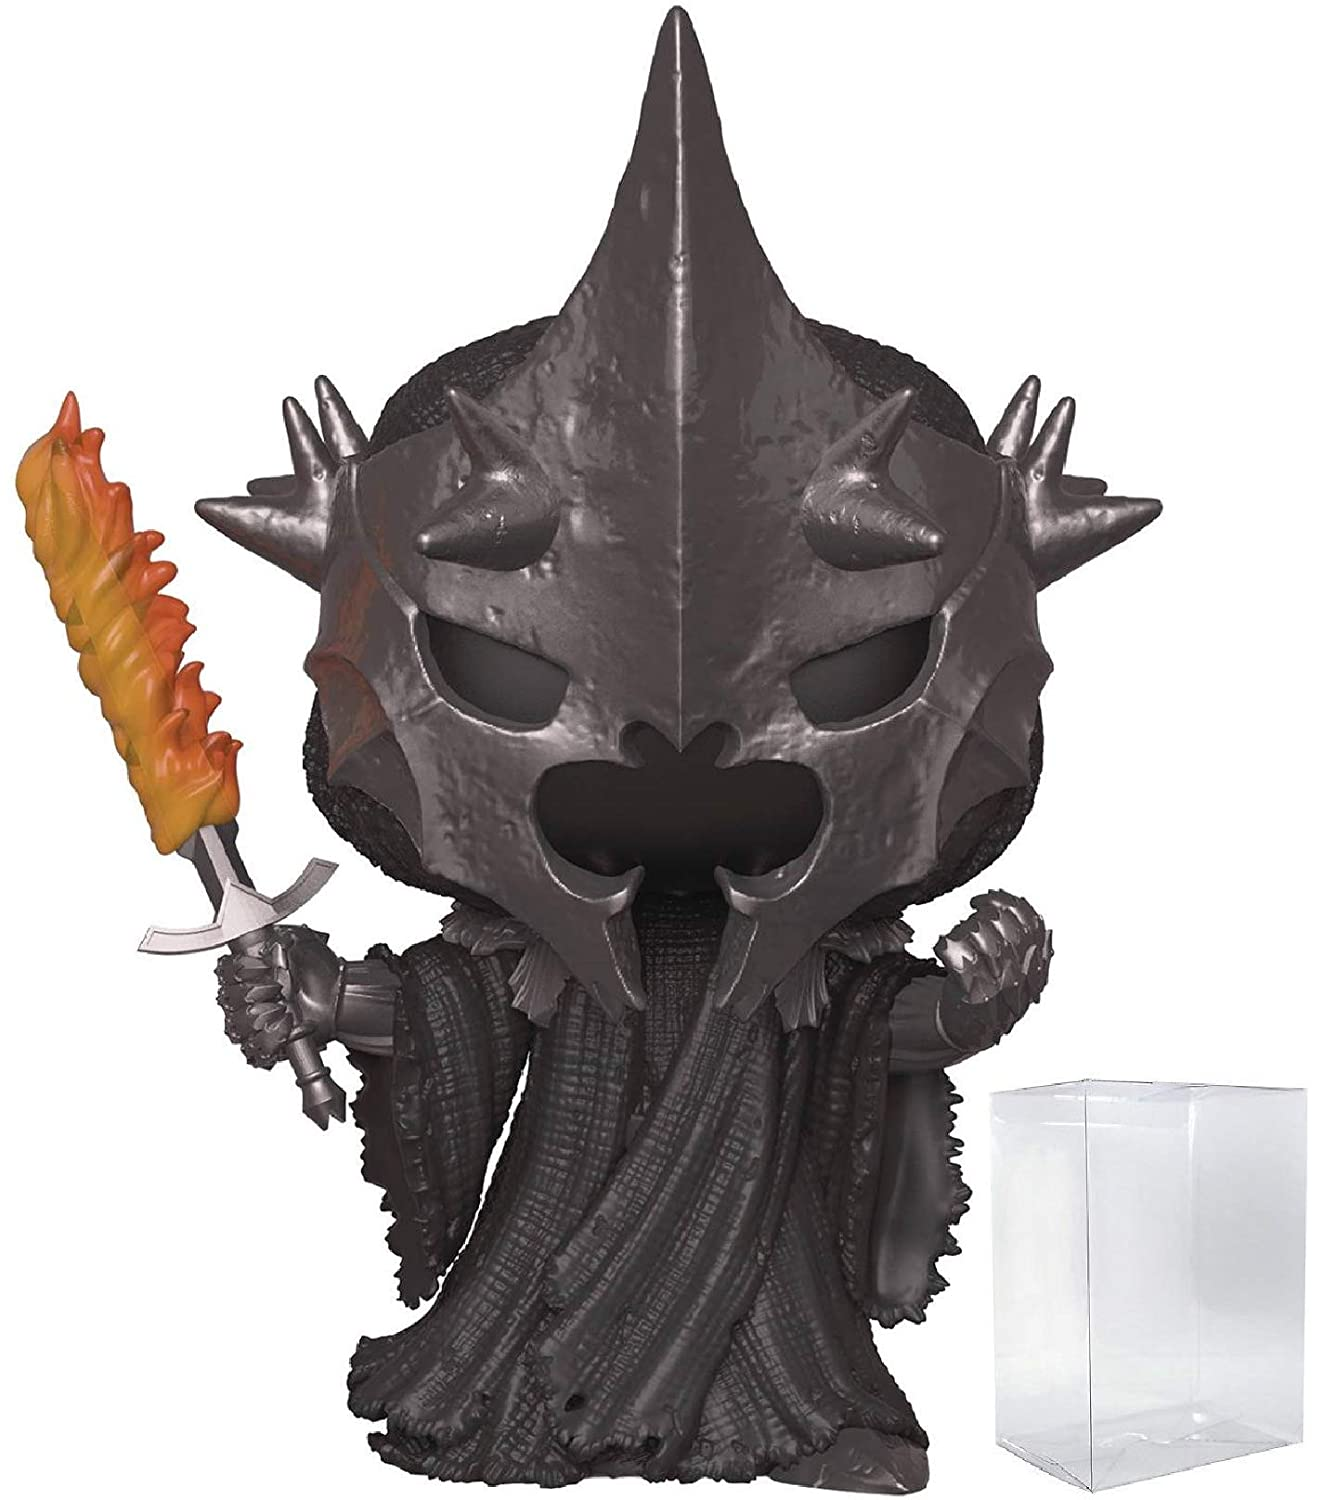 Funko Pop Includes Pop Box Protector Case Movies: The Lord of The Rings Witch King Vinyl Figure